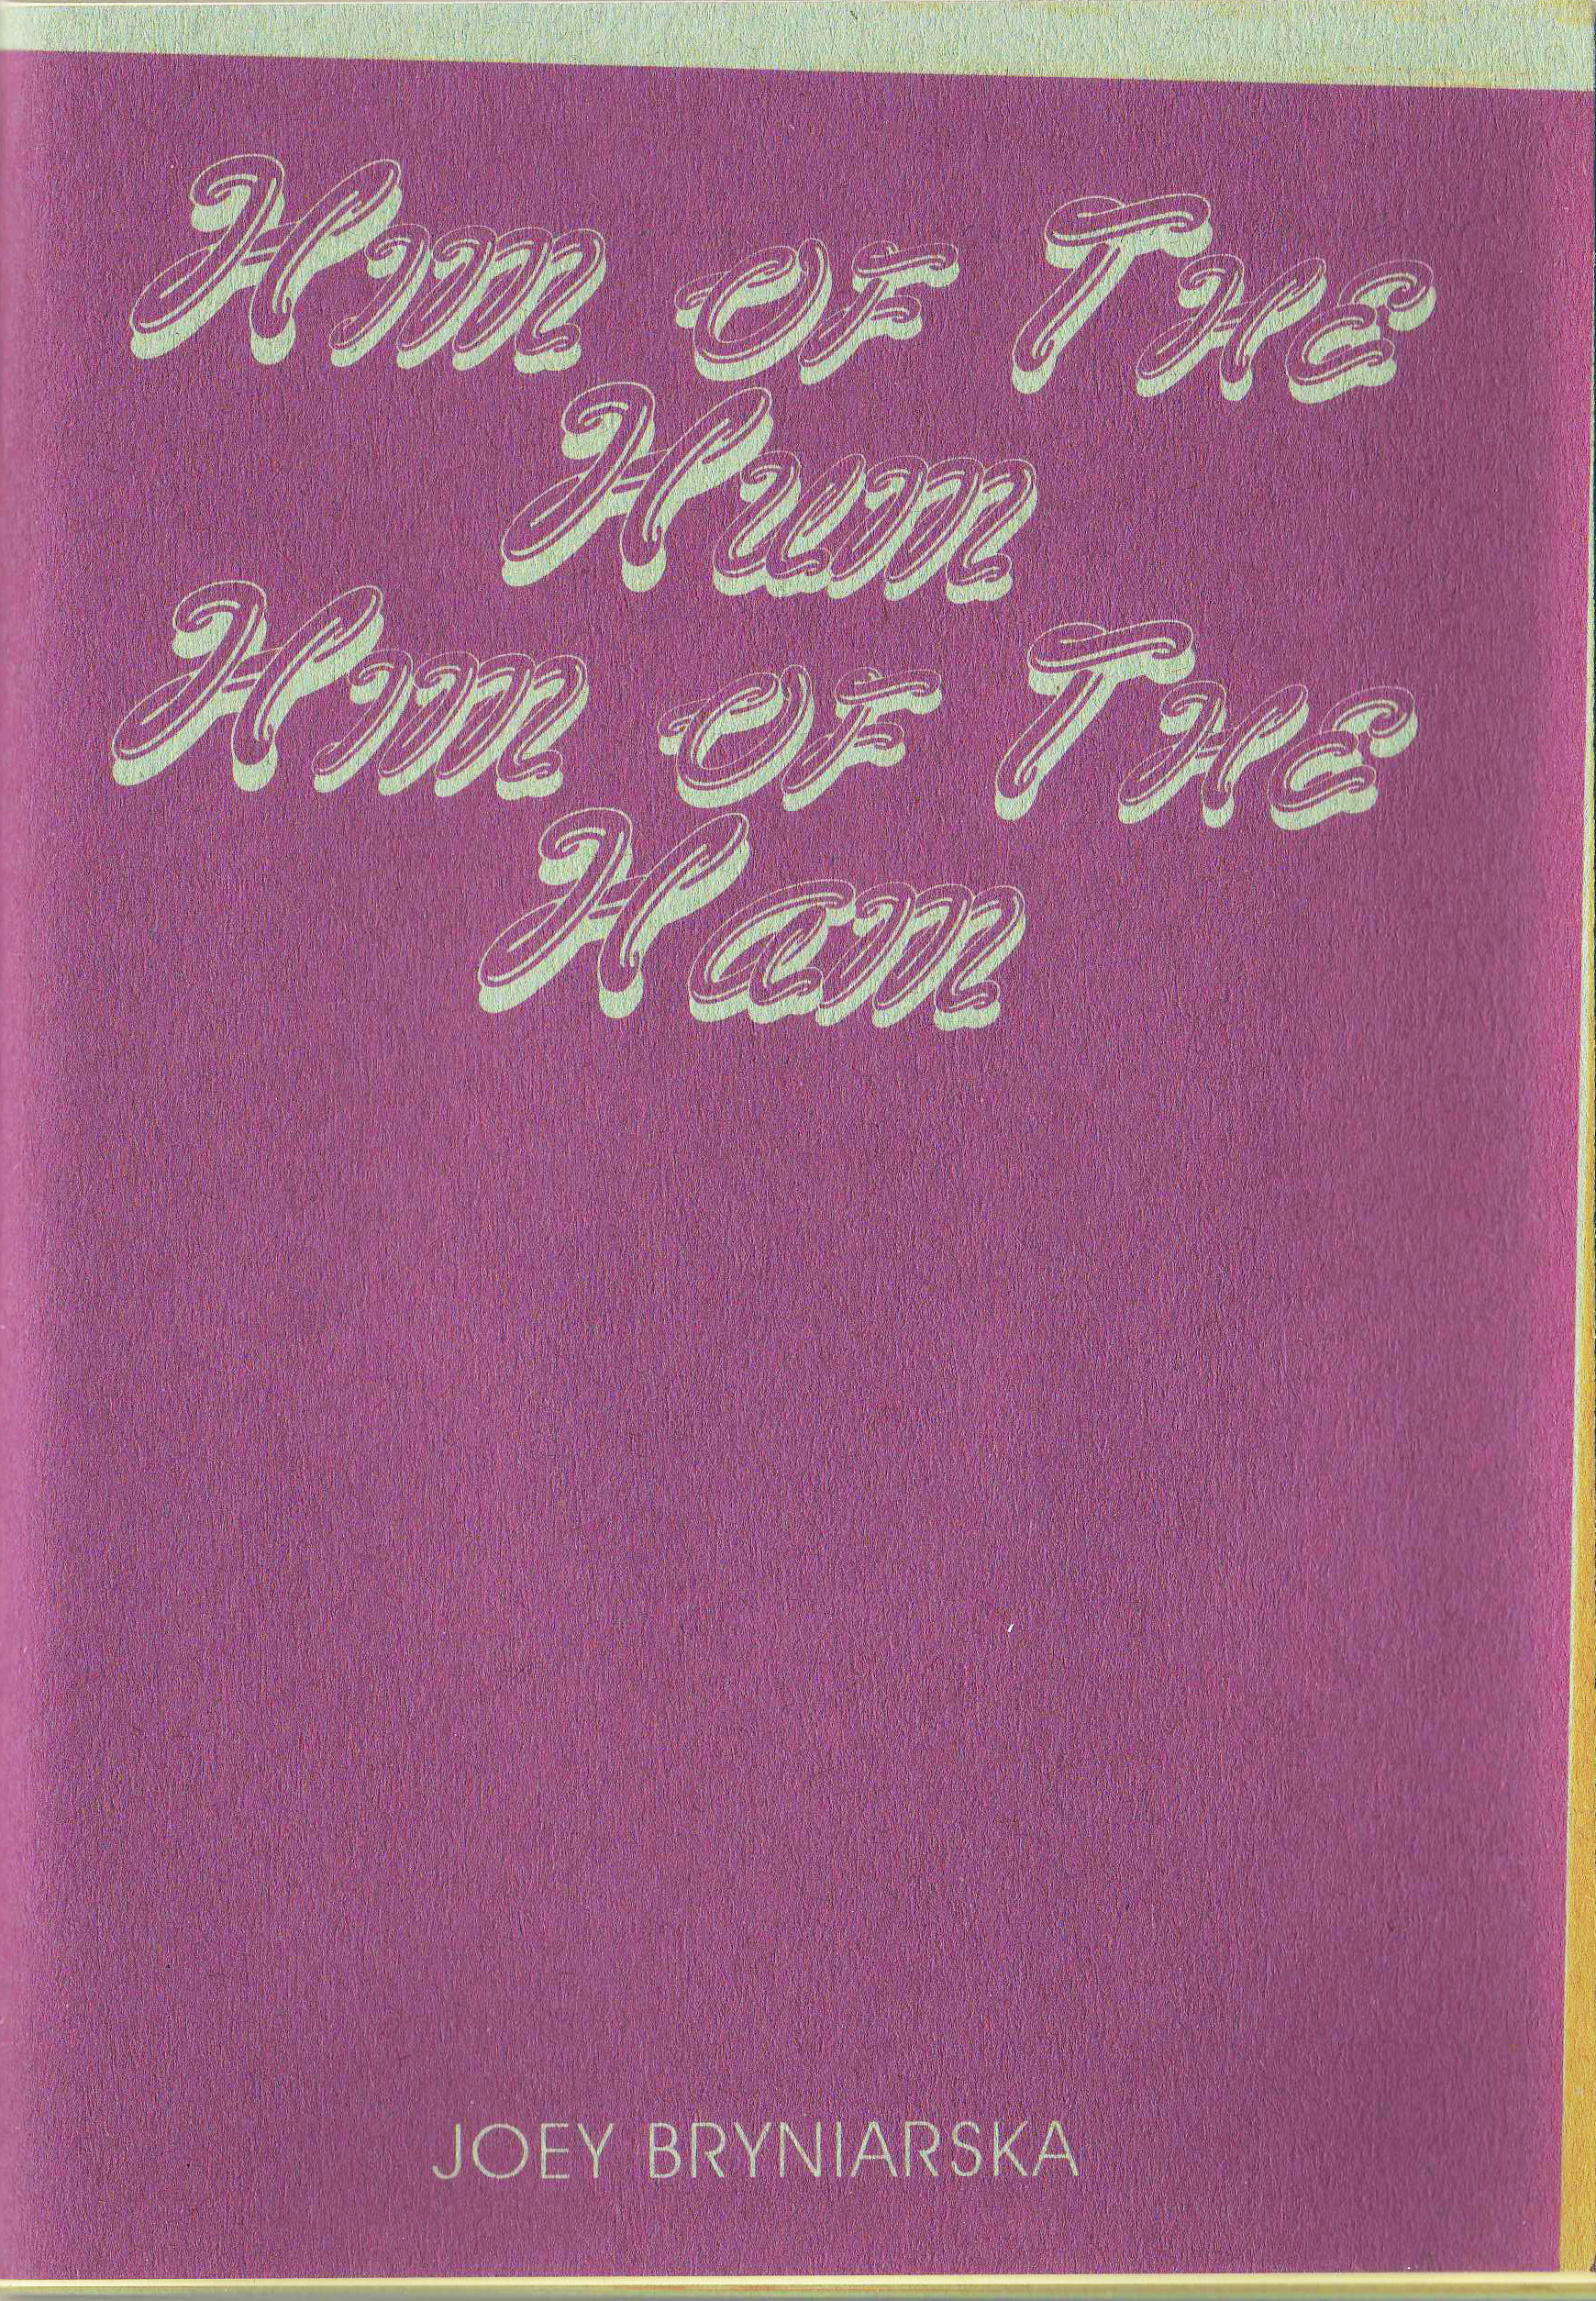 Accompanying Publication for Him of the Hum, Him of the Ham 2012